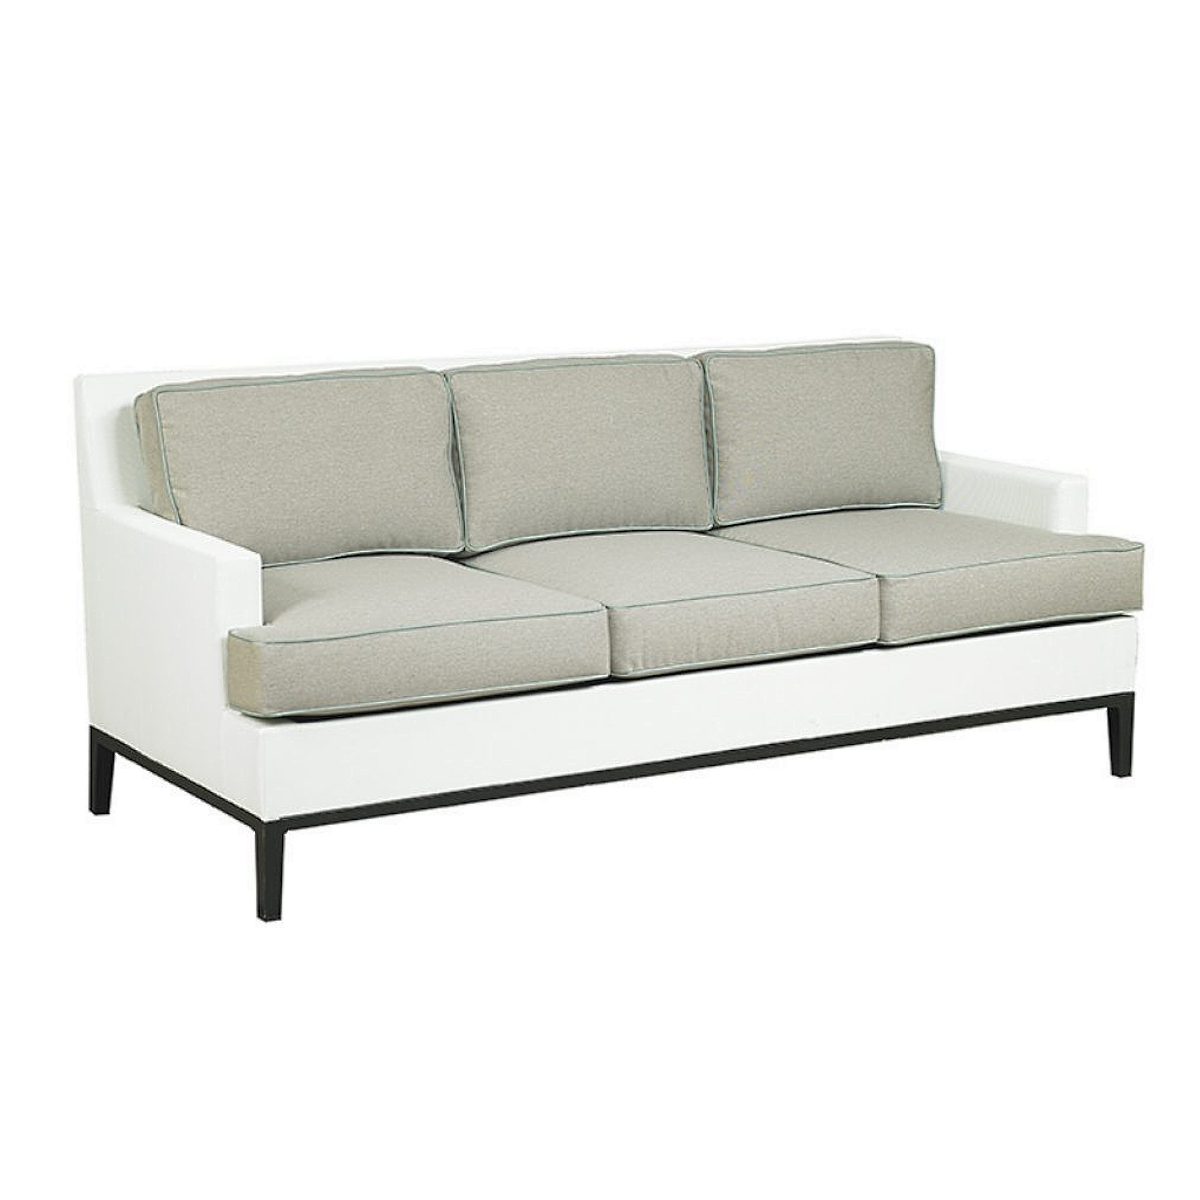 Libby Ridgewood Outdoor Patio Furniture 3 Seat Sofa